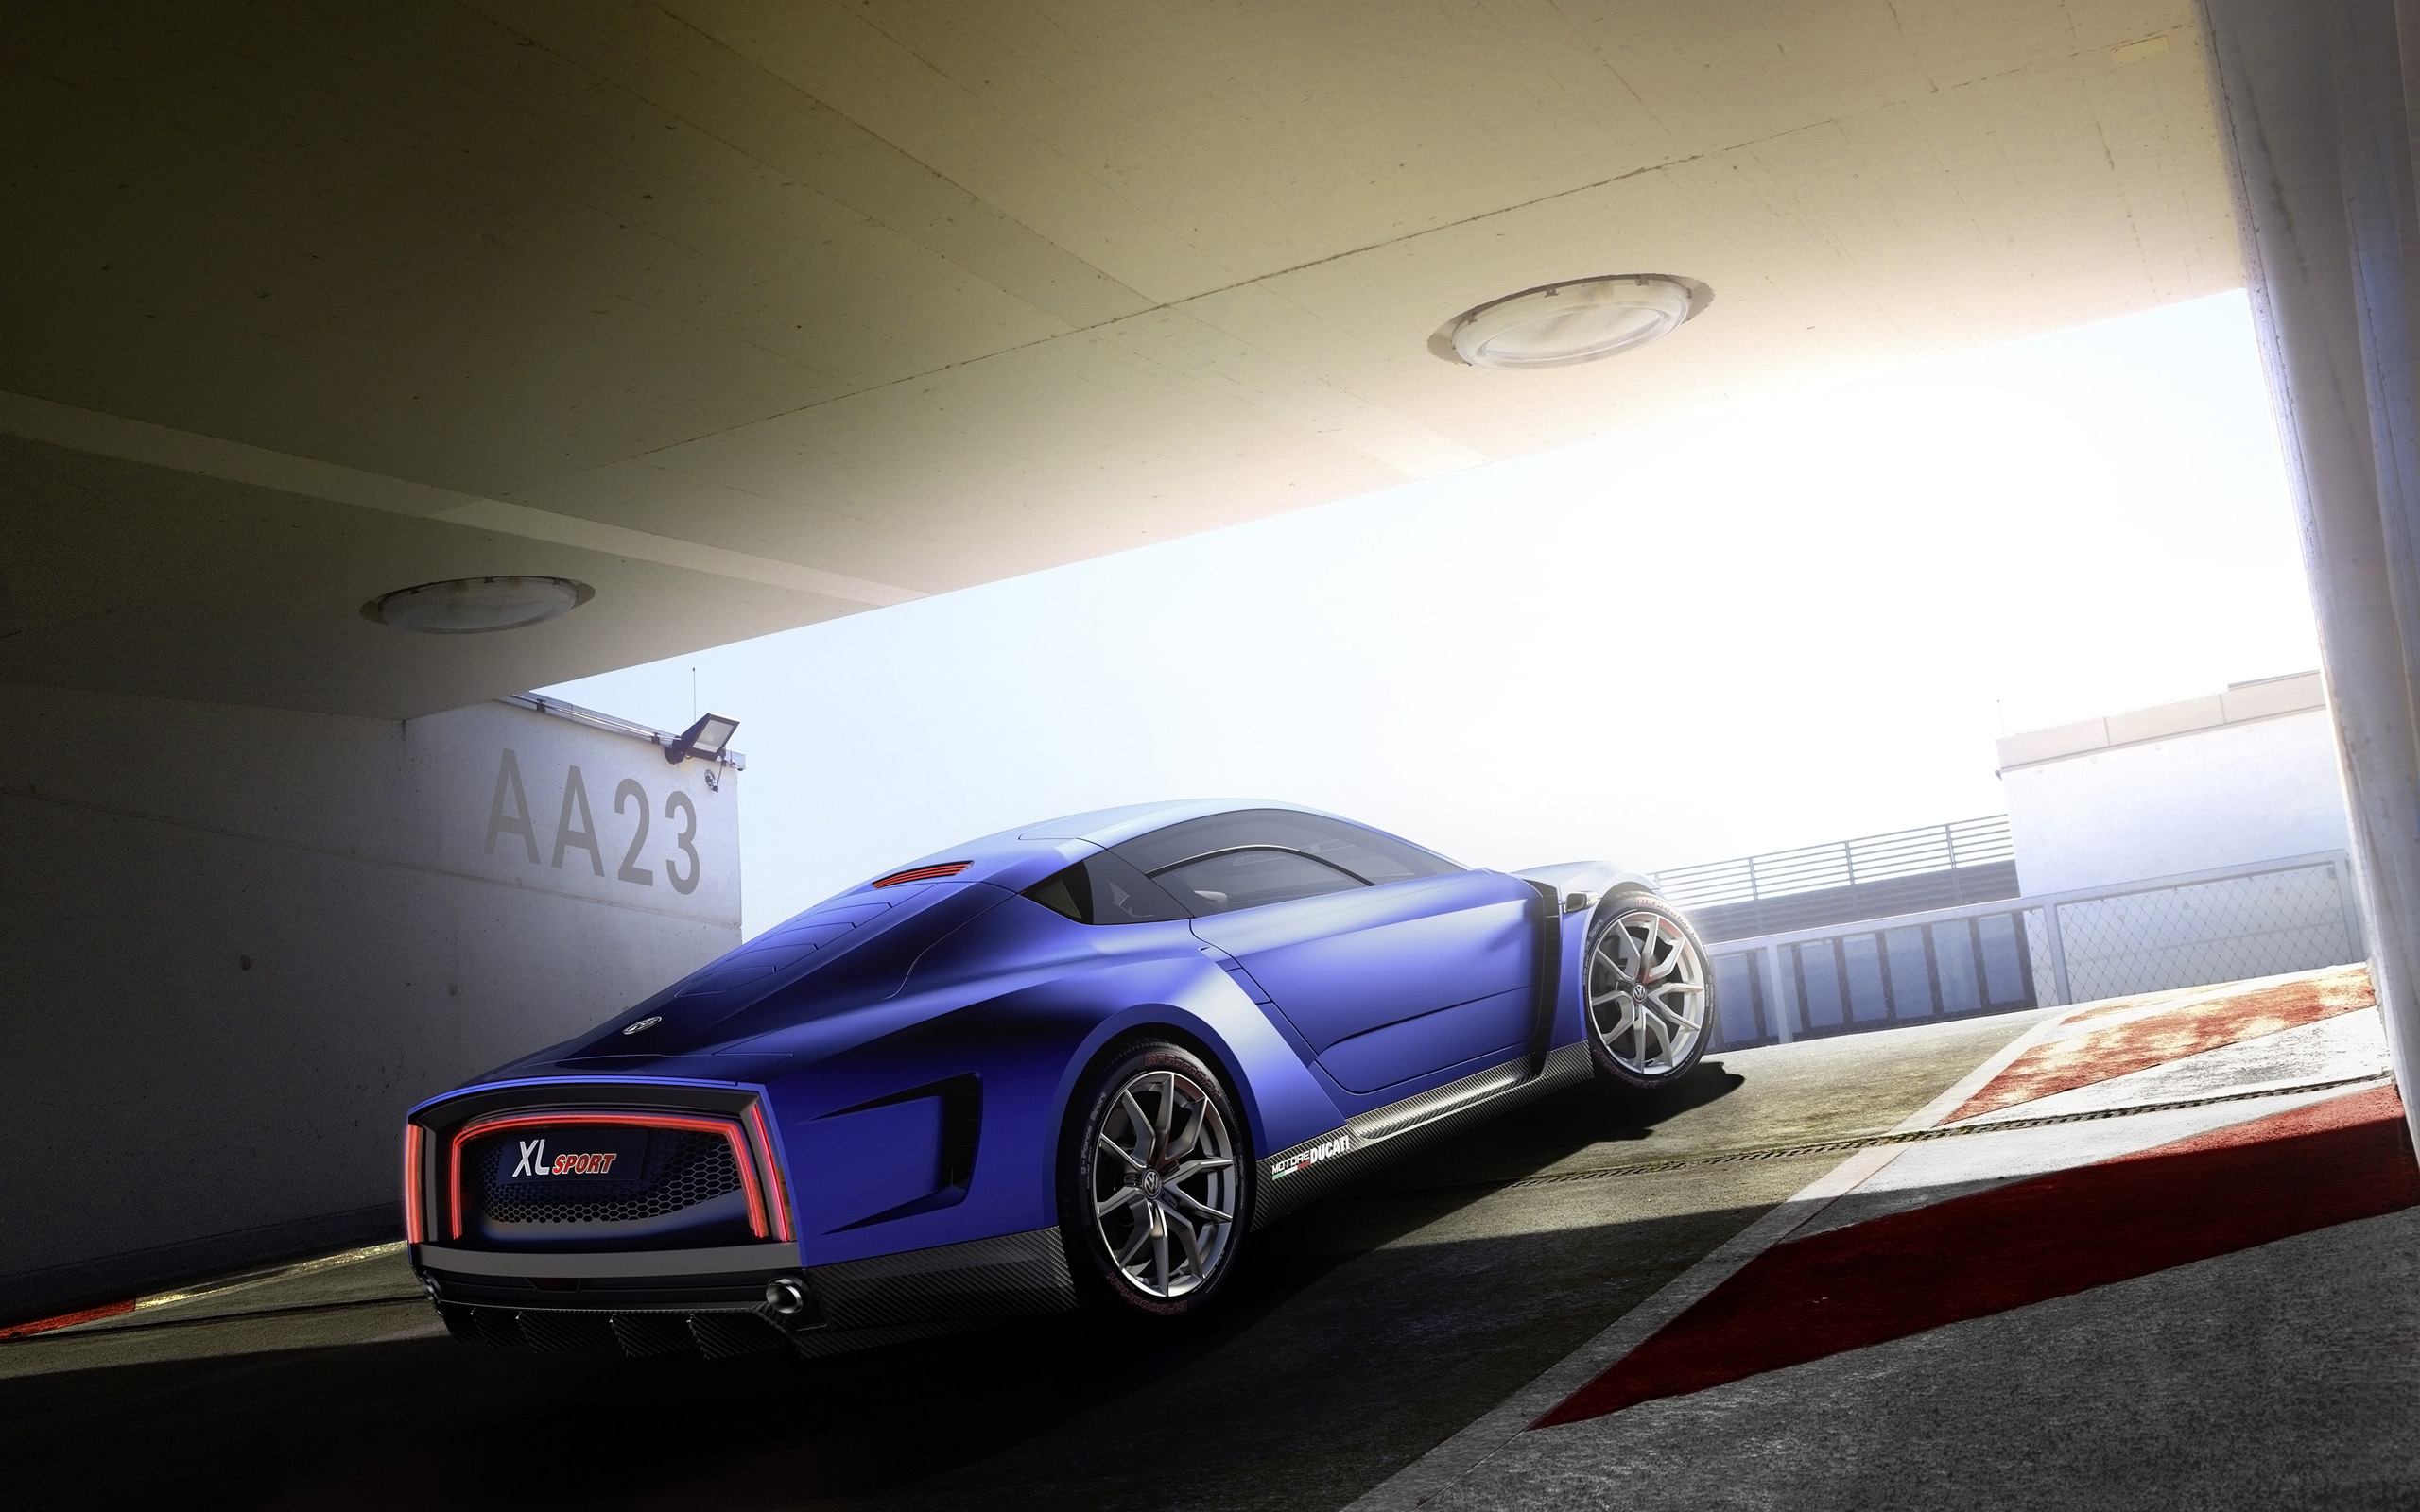 Volkswagen XL Sport Concept Wallpaper HD Car Wallpapers